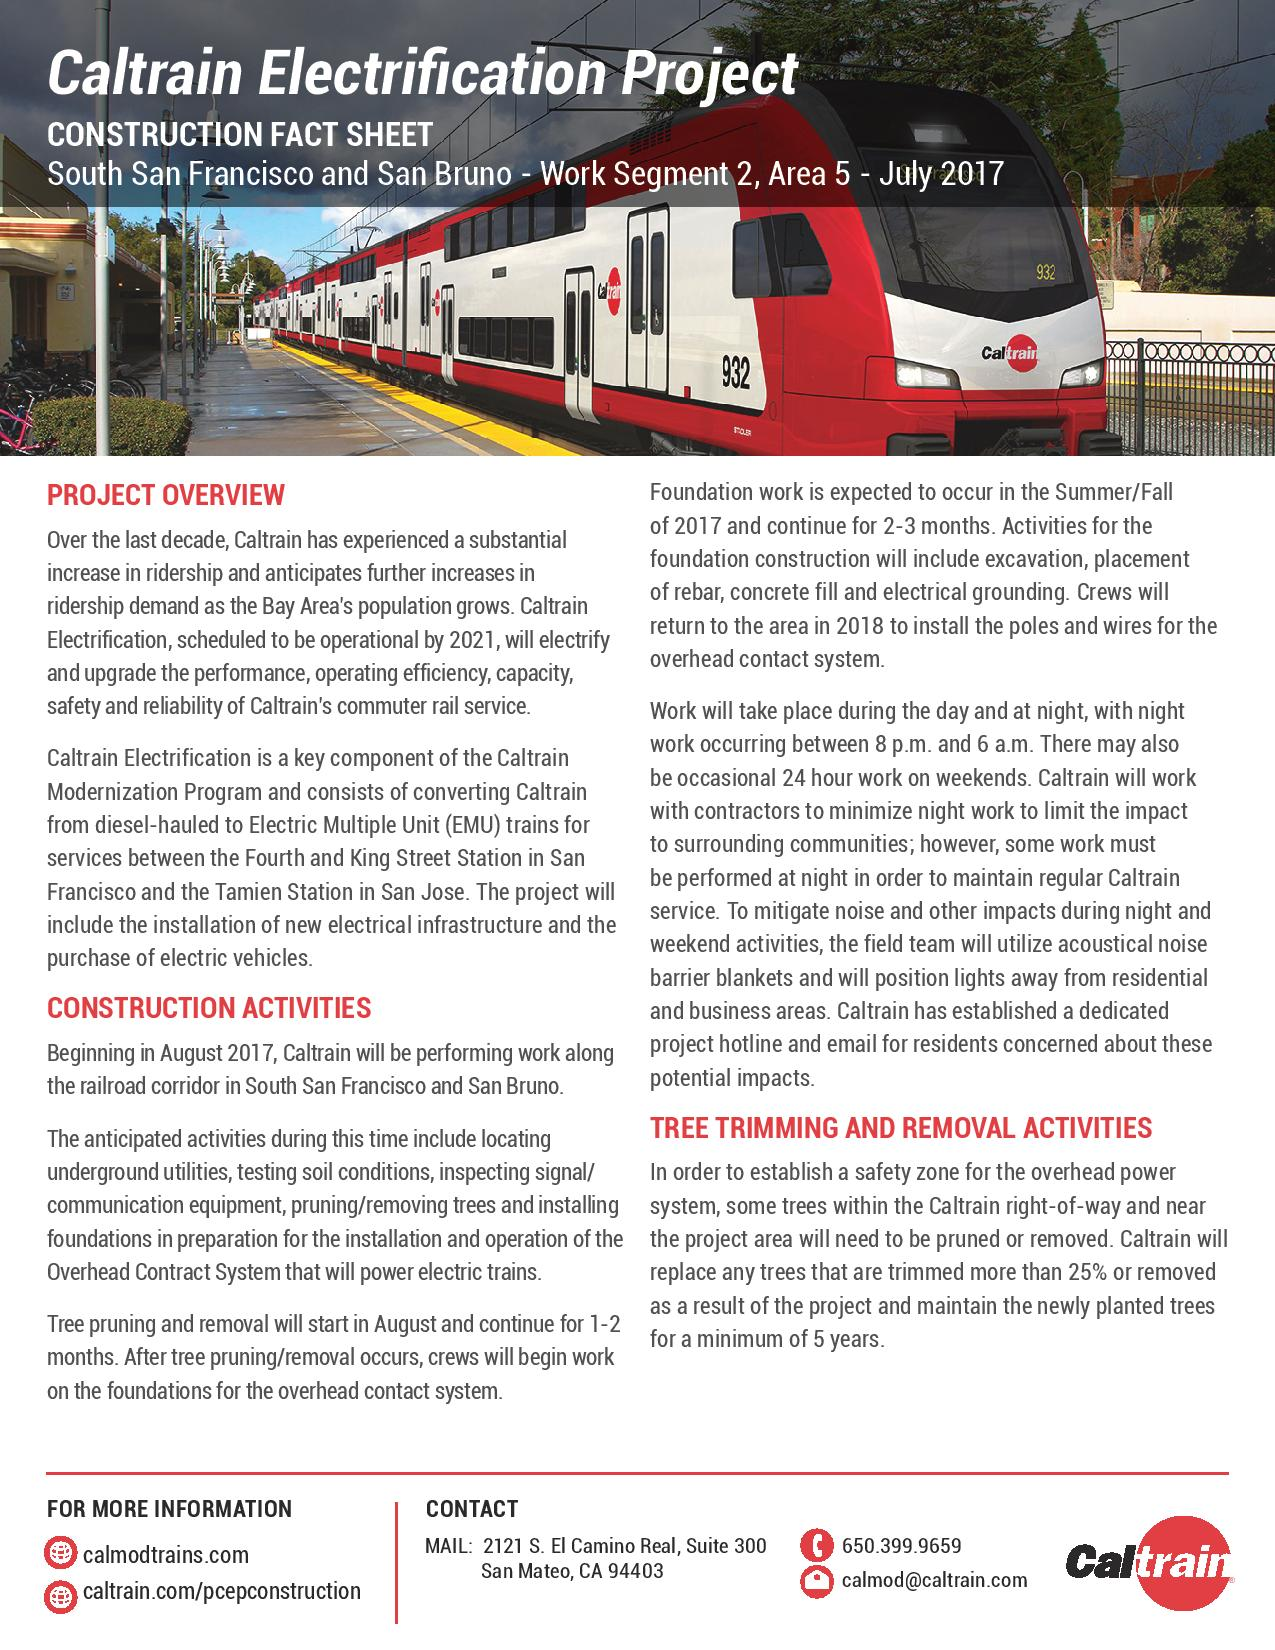 Caltrain Electrification Work Starting August 14 in South San Francisco and San Bruno